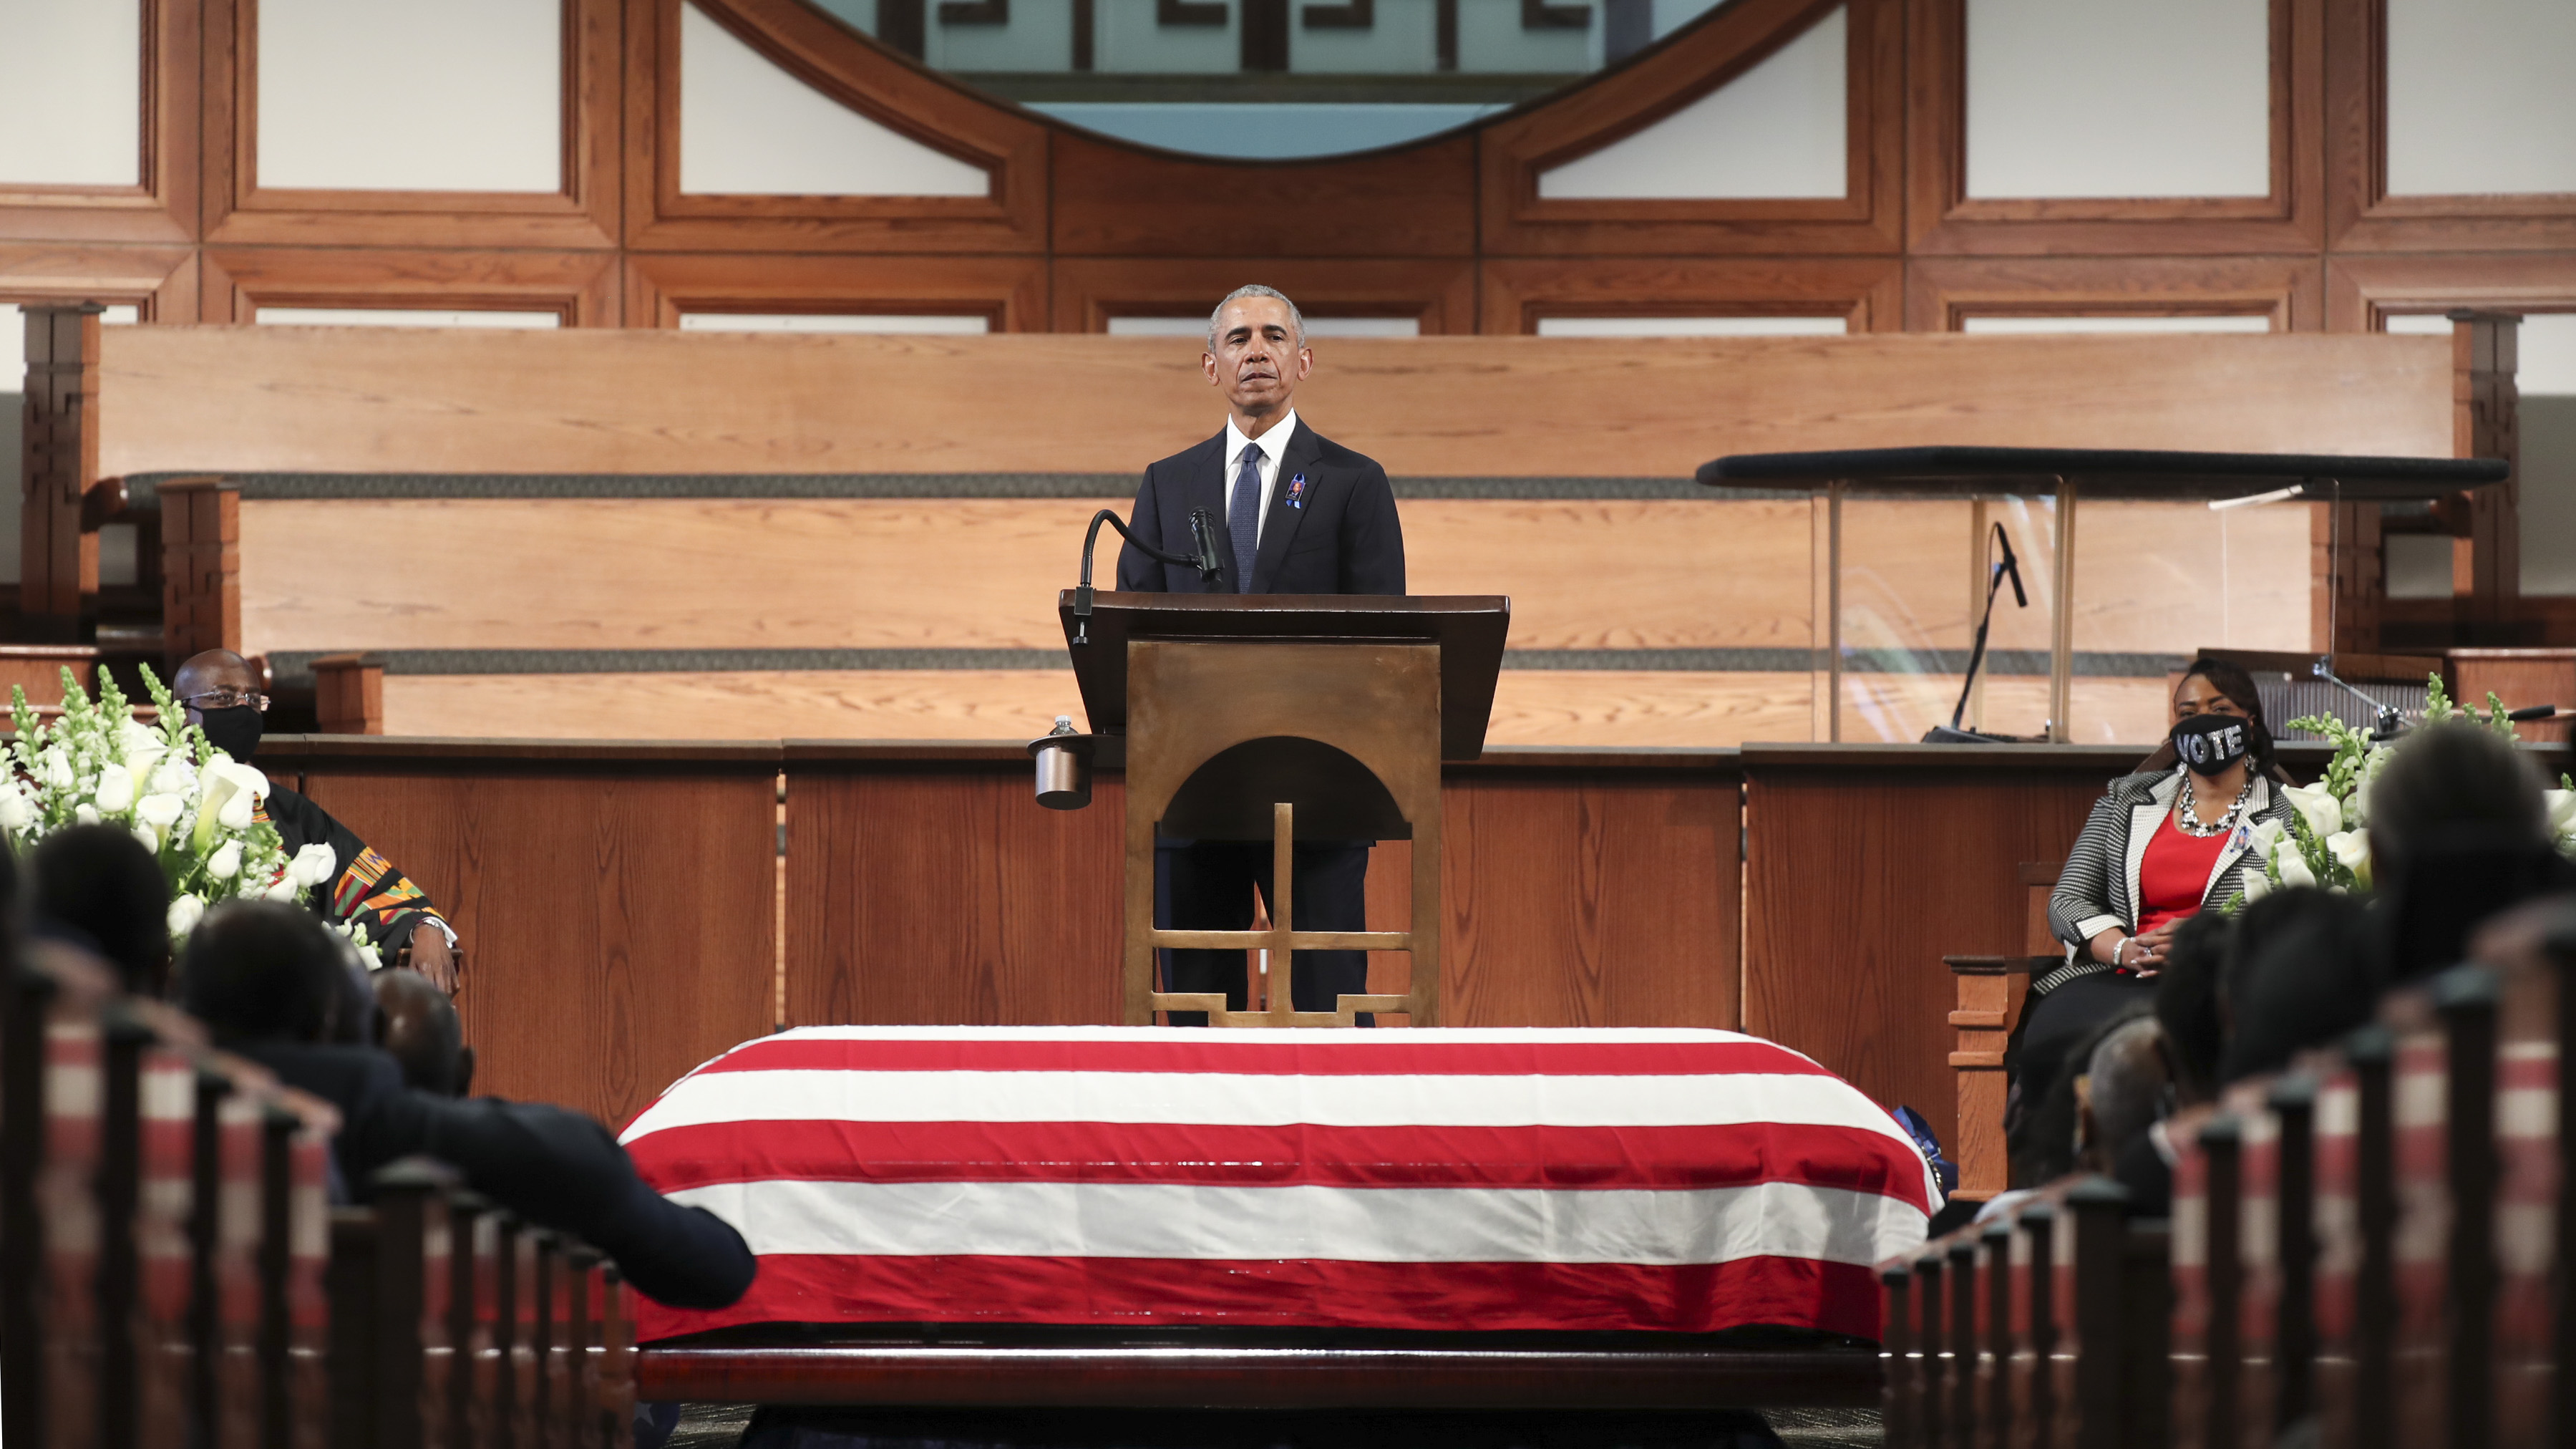 Former President Barack Obama at the pulpit of John Lewis's funeral.